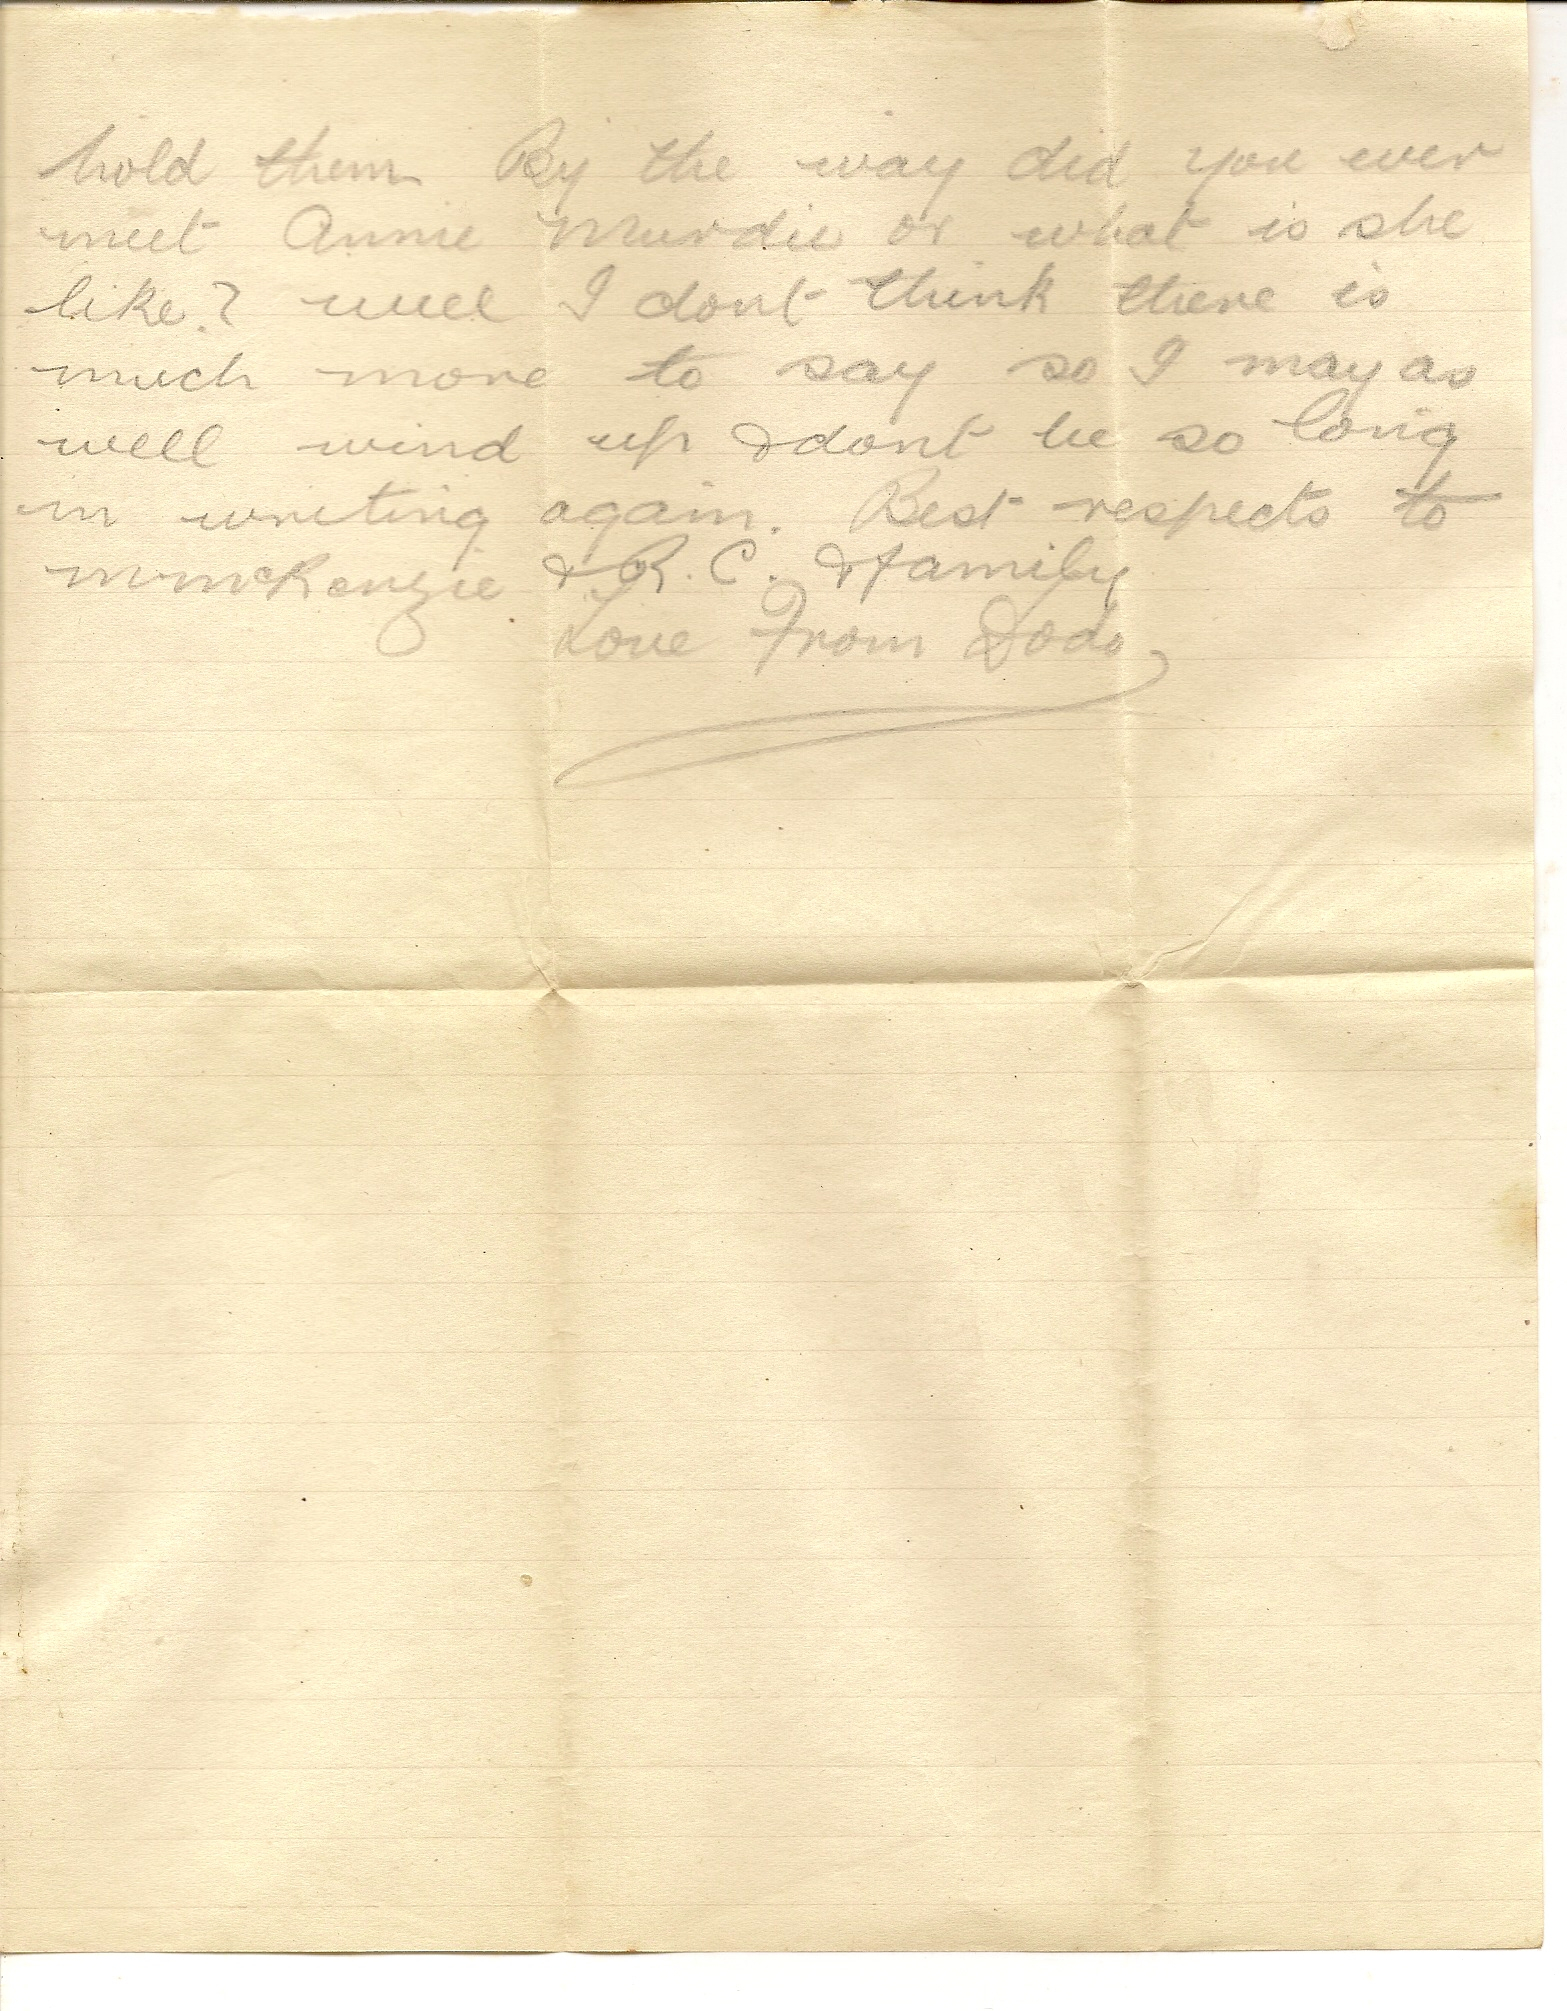 image of back of letter dated January 25 1918